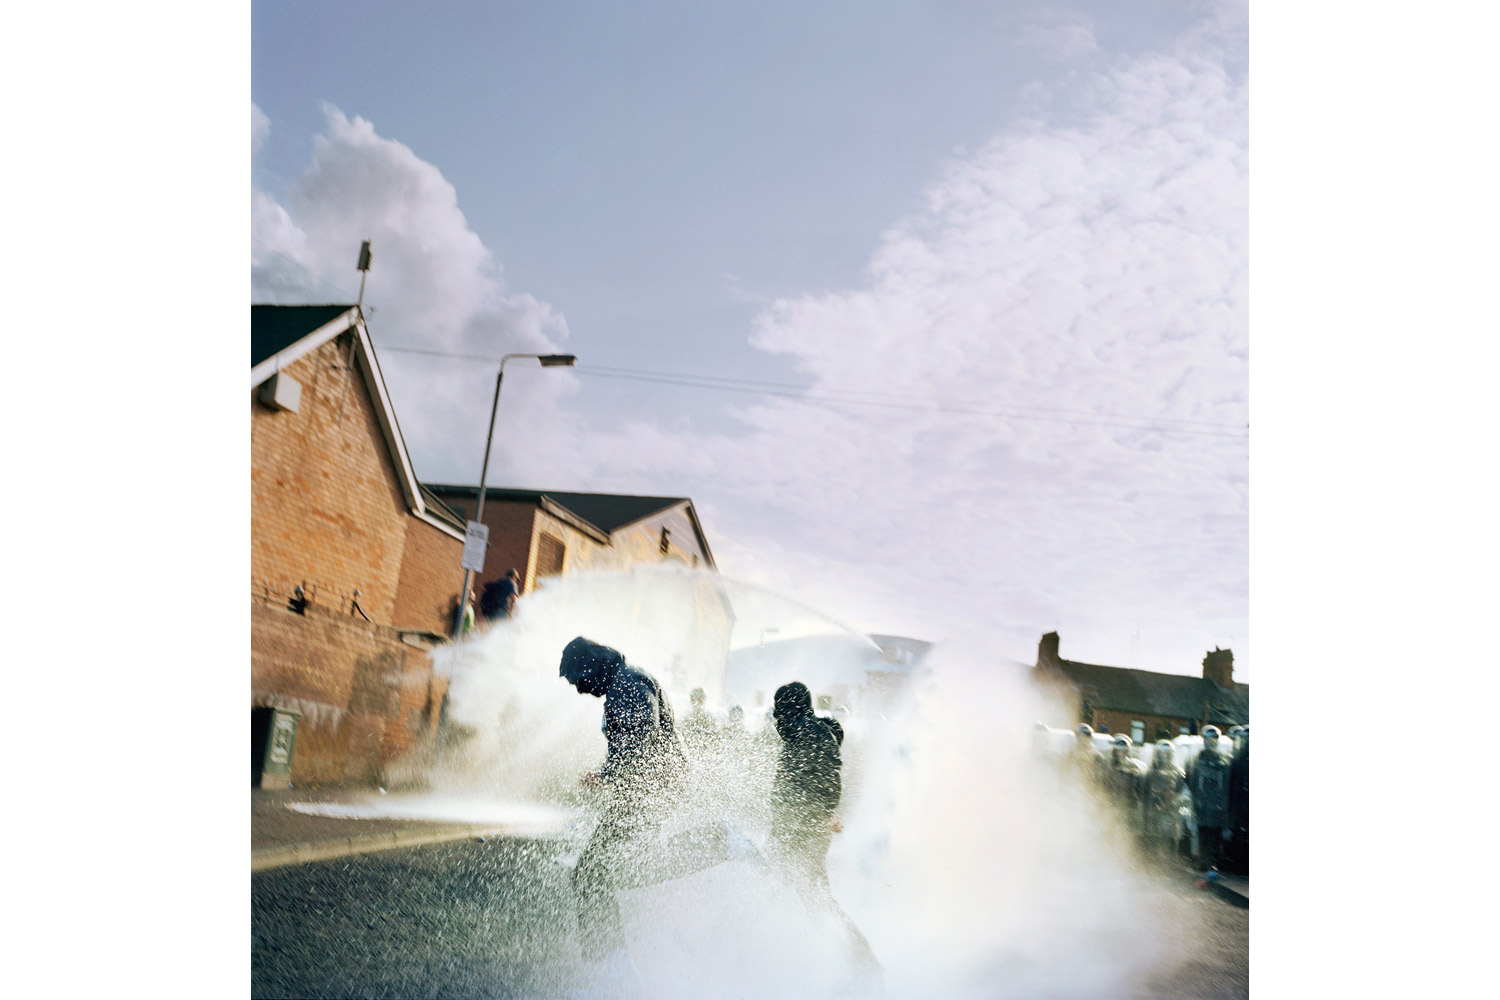 Riot police use water canons to repel Republican (Catholic) youth as they attempt to disrupt a loyalist (Protestant) band marching past their estate during the annual July 12 parades. The annual marching season still brings trouble between Protestant and Catholic communities living in close proximity to each other. 2011.